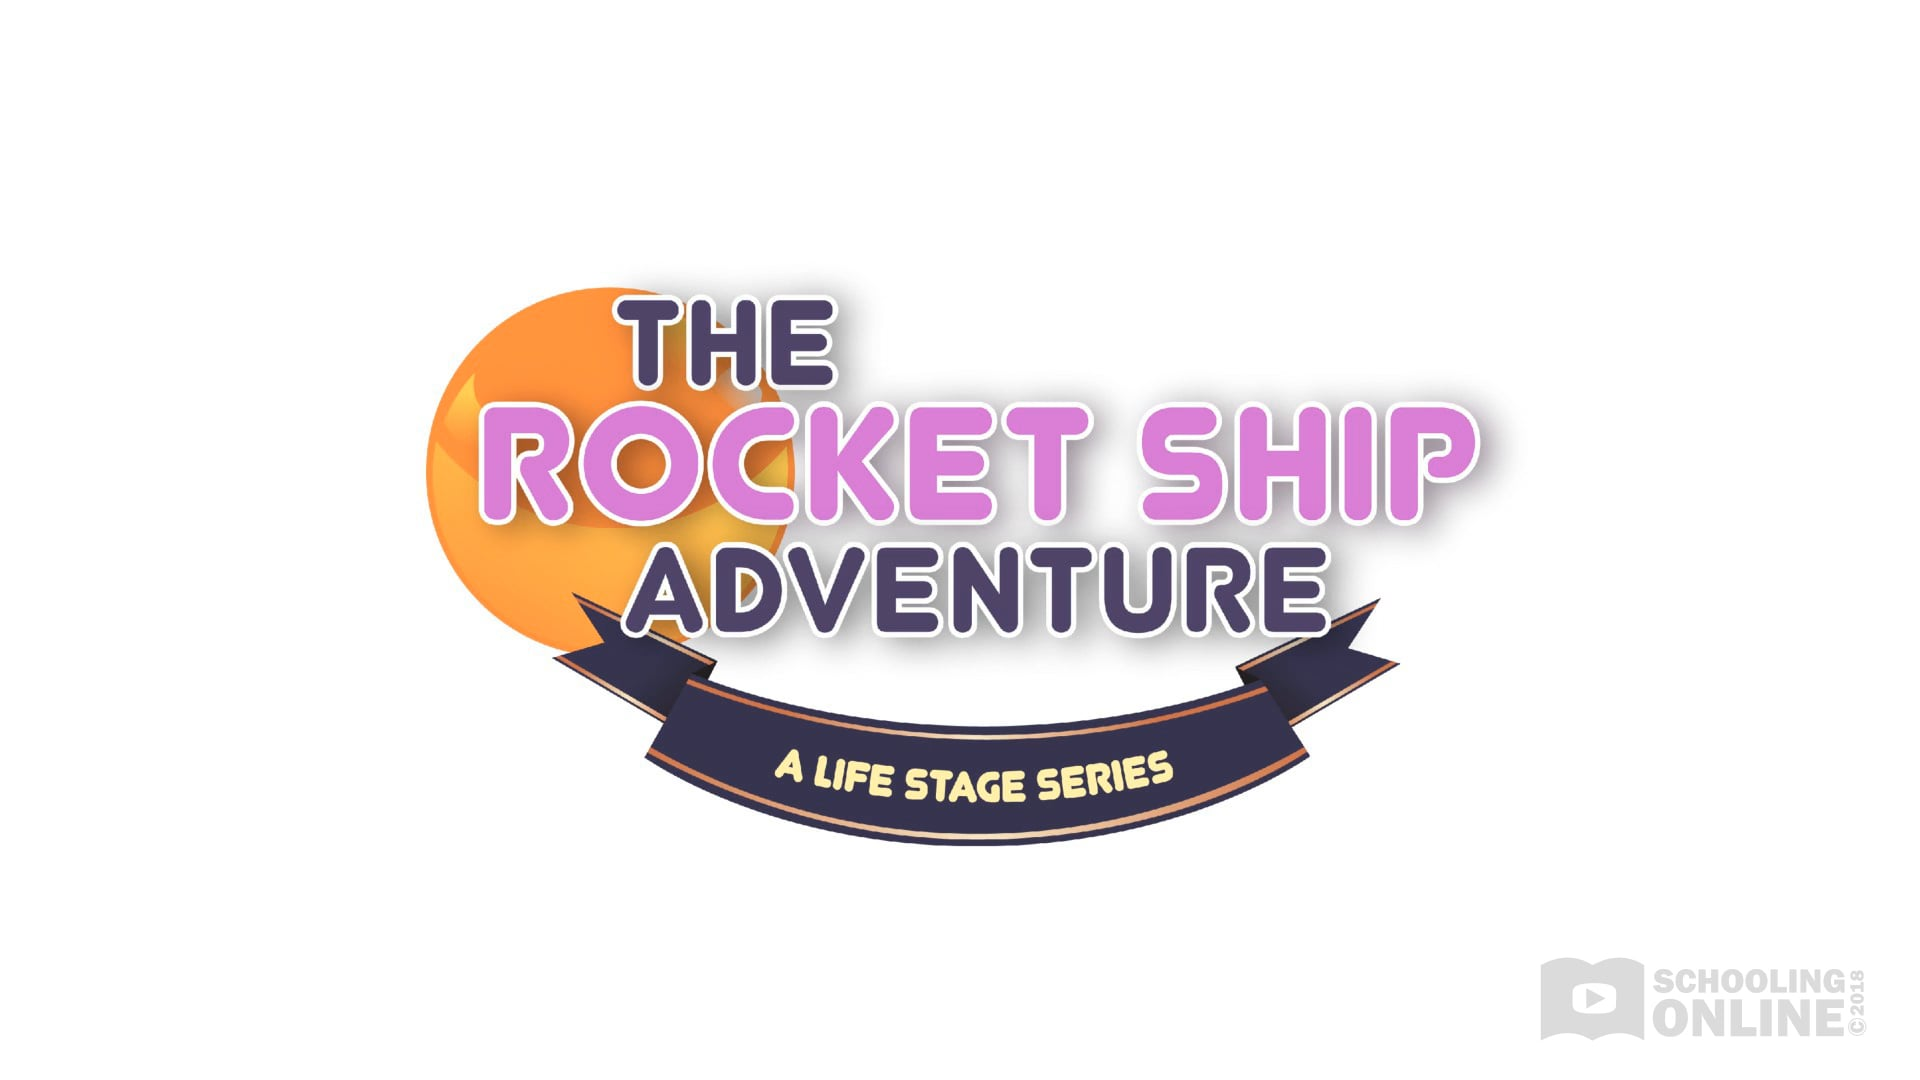 The Rocket Ship Adventure - The Life Stage Series